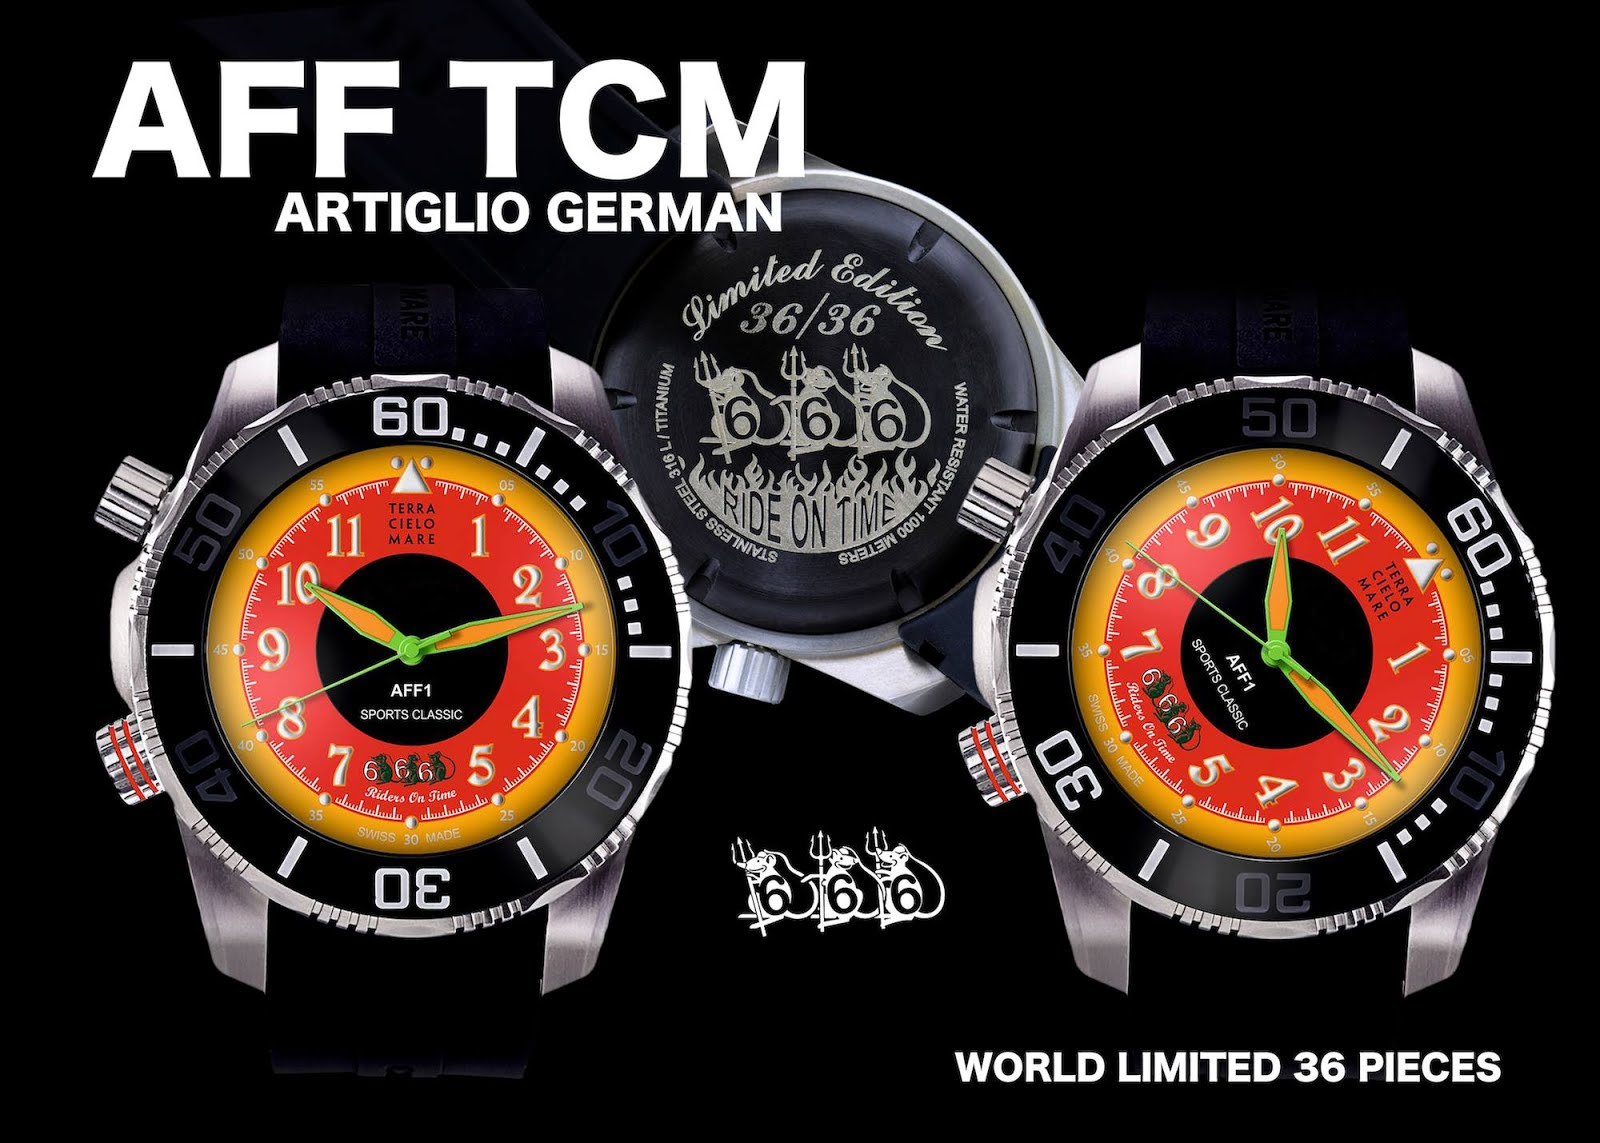 AFF1 オリジナル TCM  666 Limited  36  PRICE   388800Yen